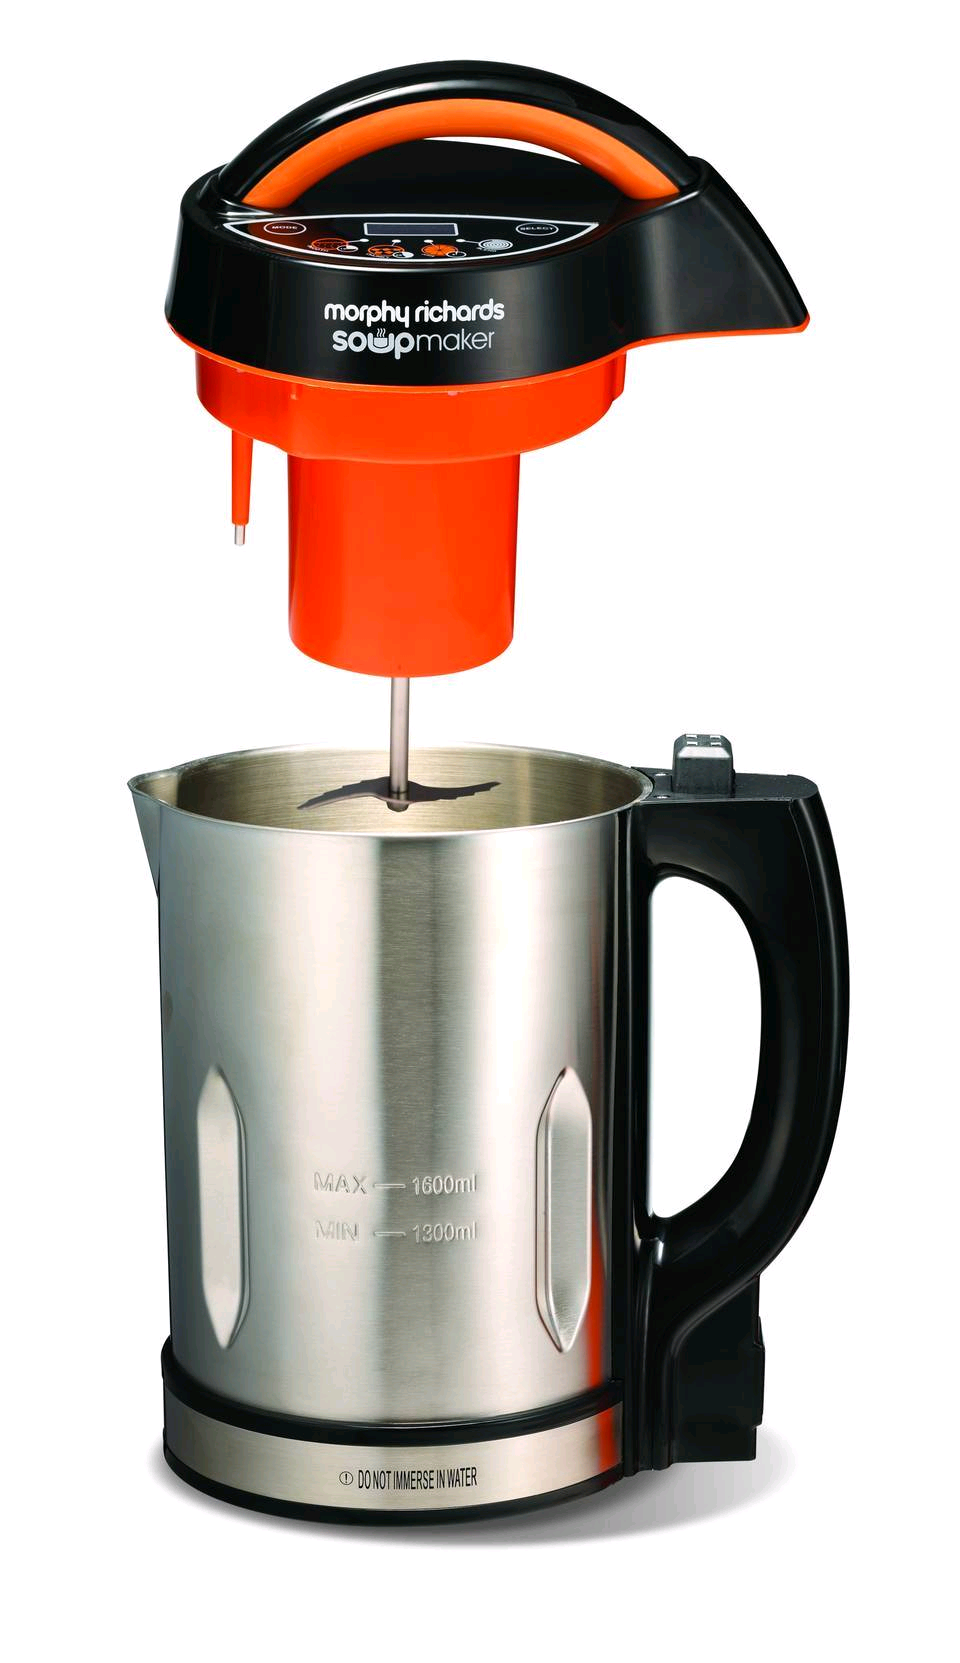 Morphy Richards Soup Maker 1.6l Capacity